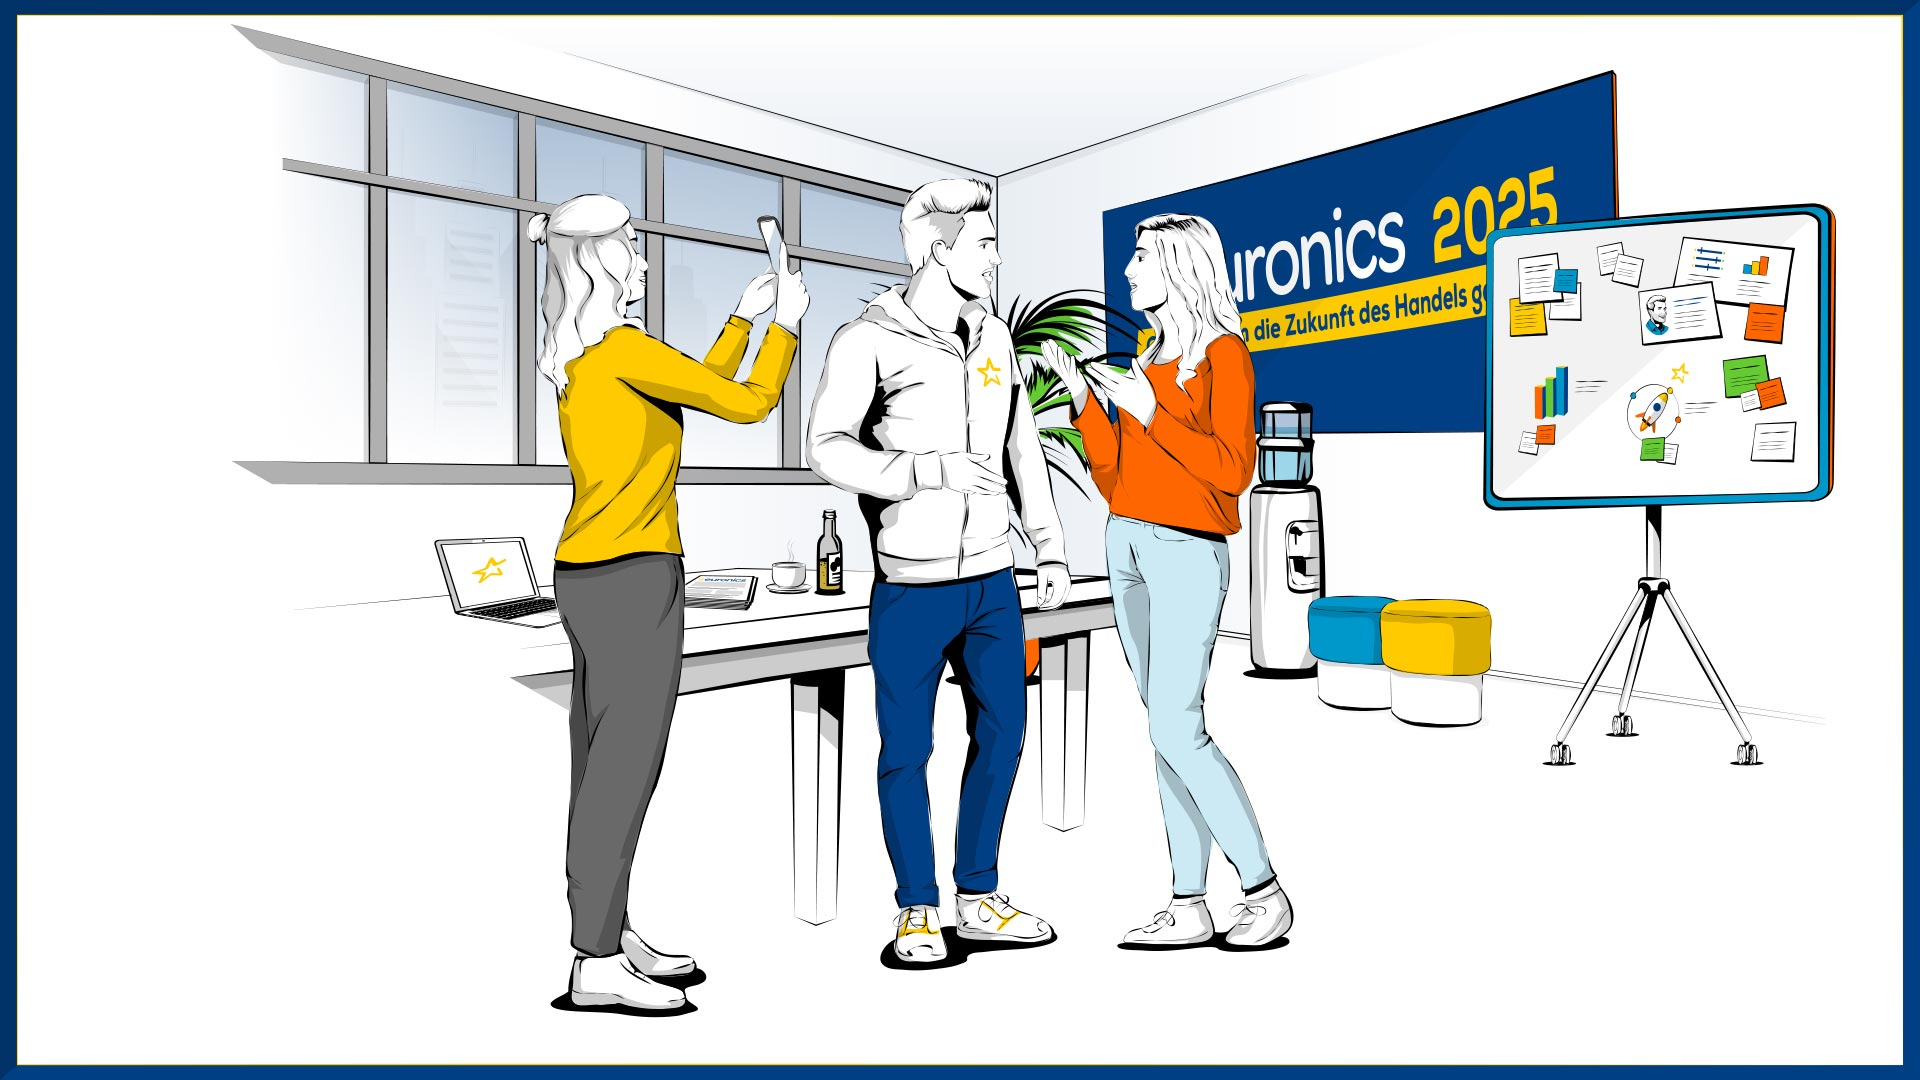 EURONICS Illustrationen